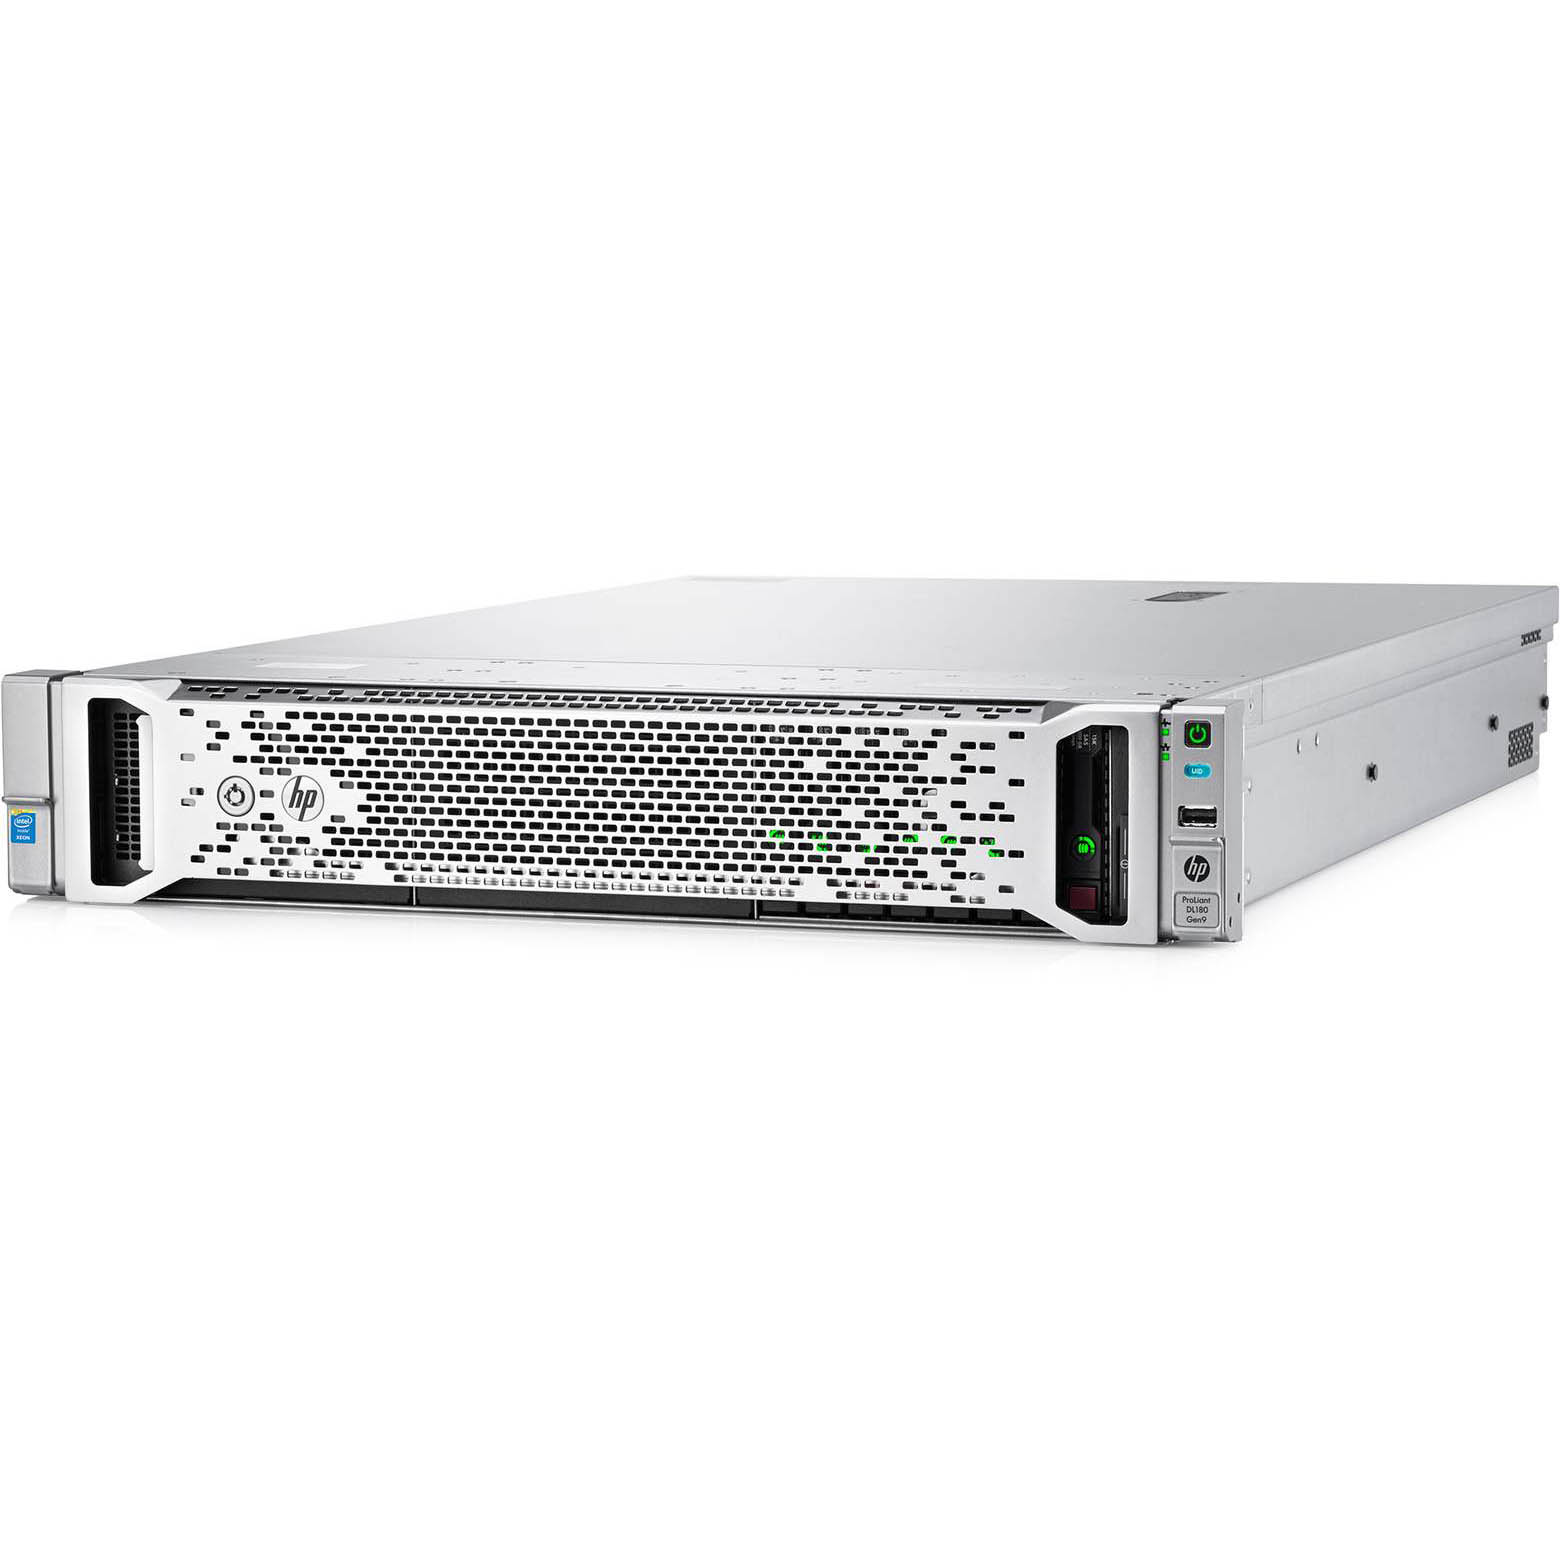 Сервер HP Proliant DL180 Gen9 Rack (2U) 784108-425